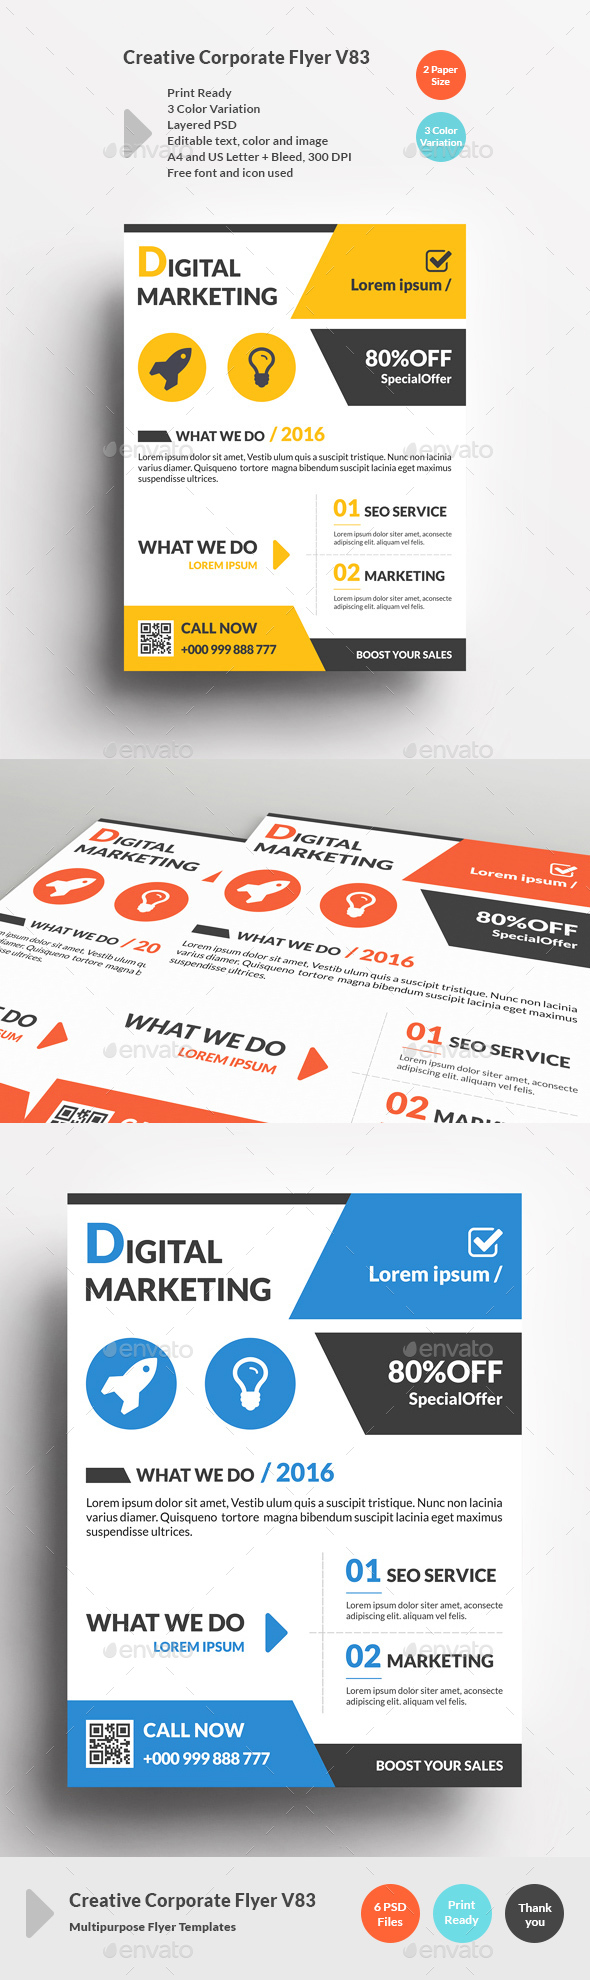 Creative Corporate Flyer V83 - Corporate Flyers